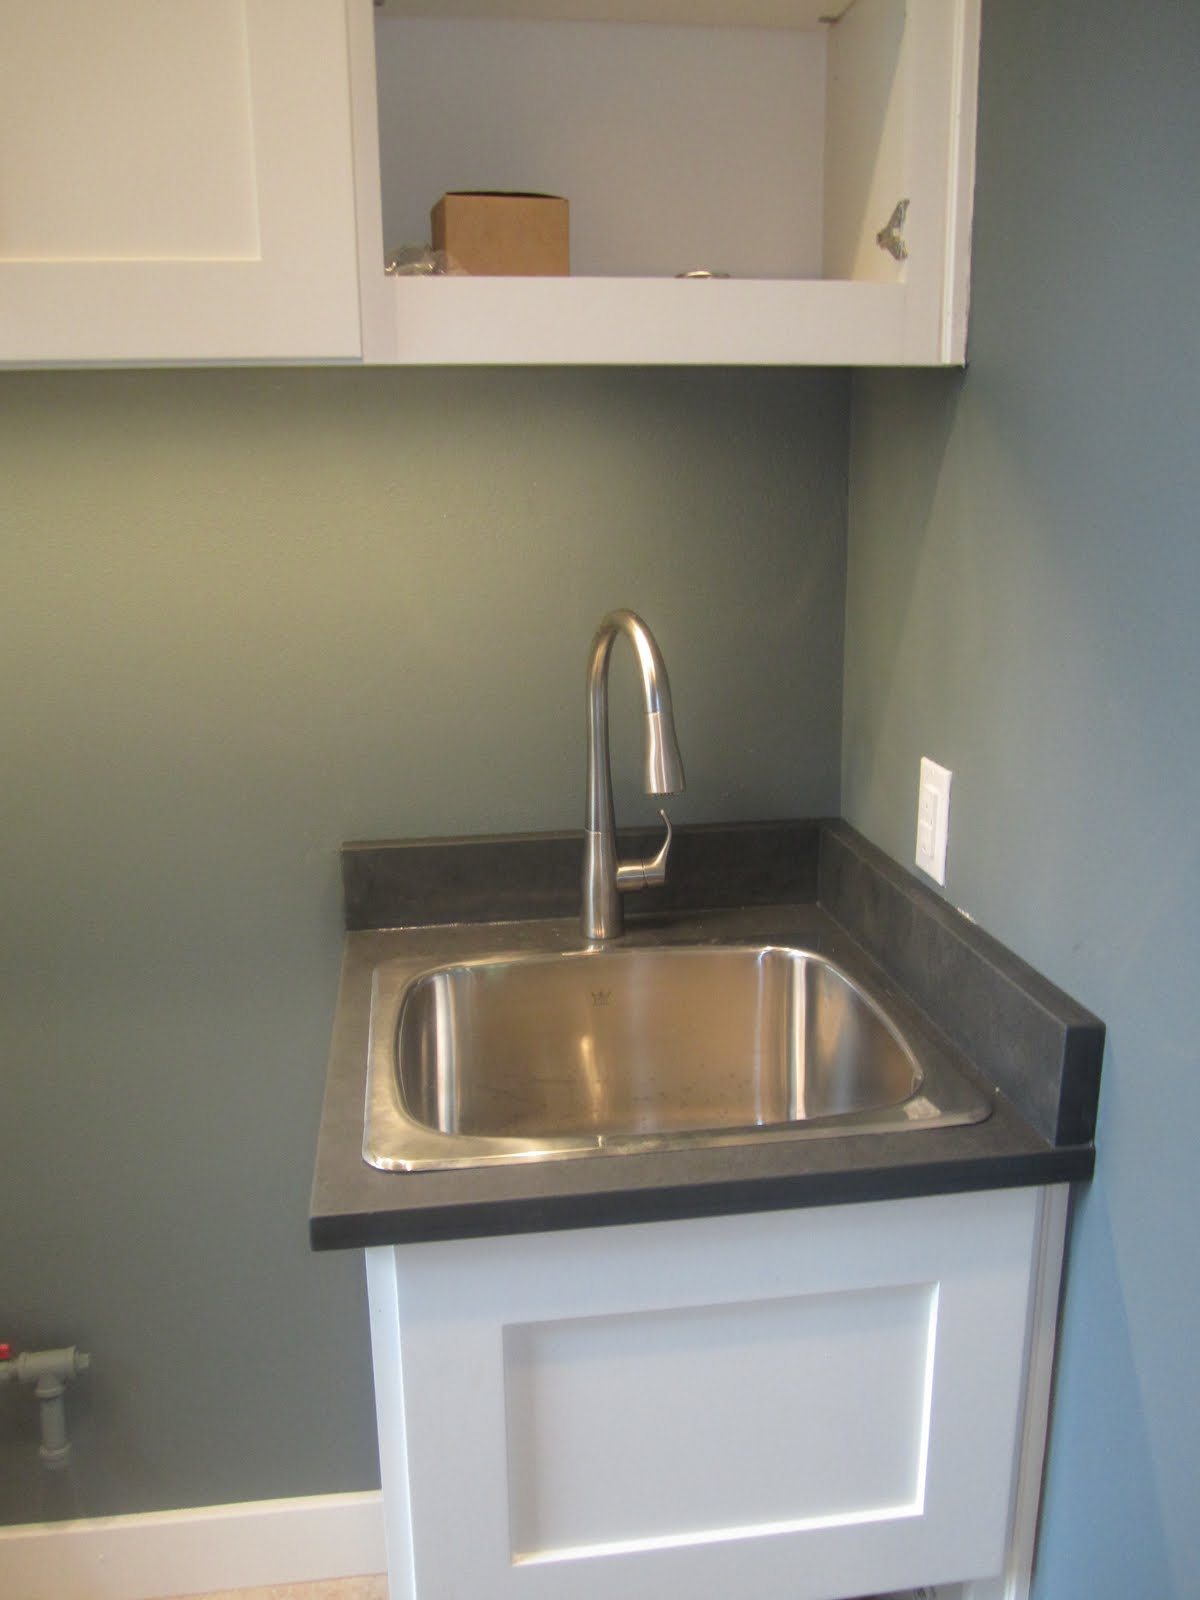 Deep Utility Sink With Cabinet : Posted by Pro at 11:18 AM